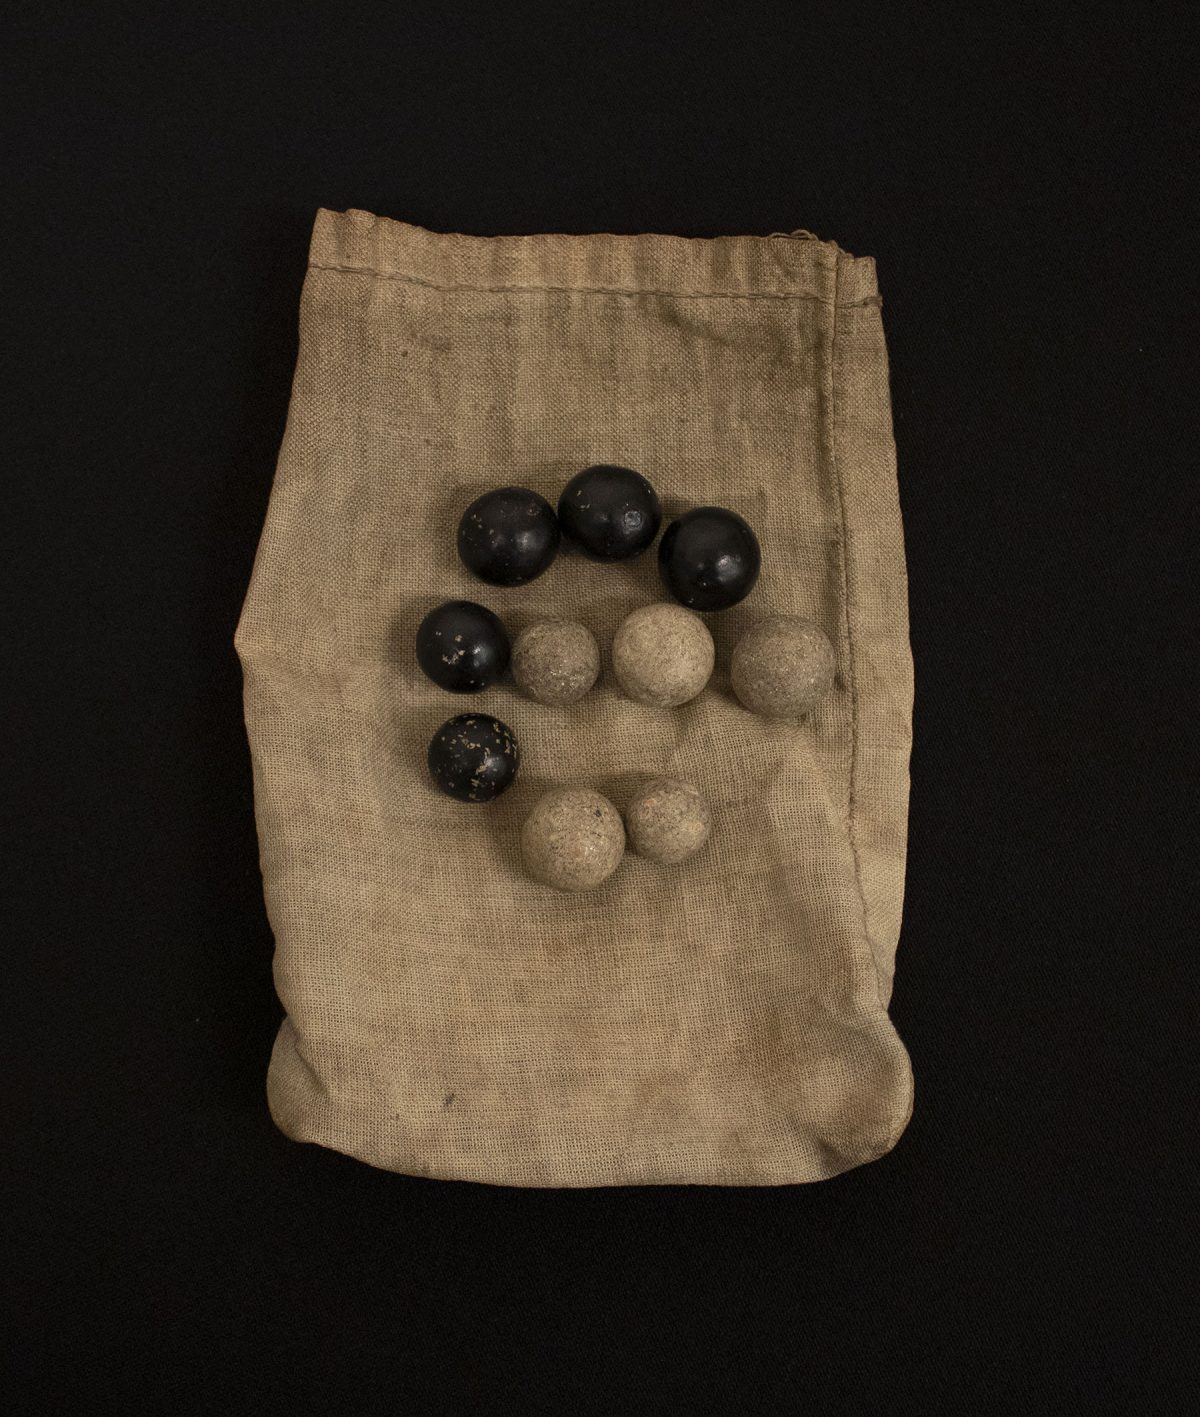 Object of the Week: Order Sons of Italy Ballot Balls and Bag